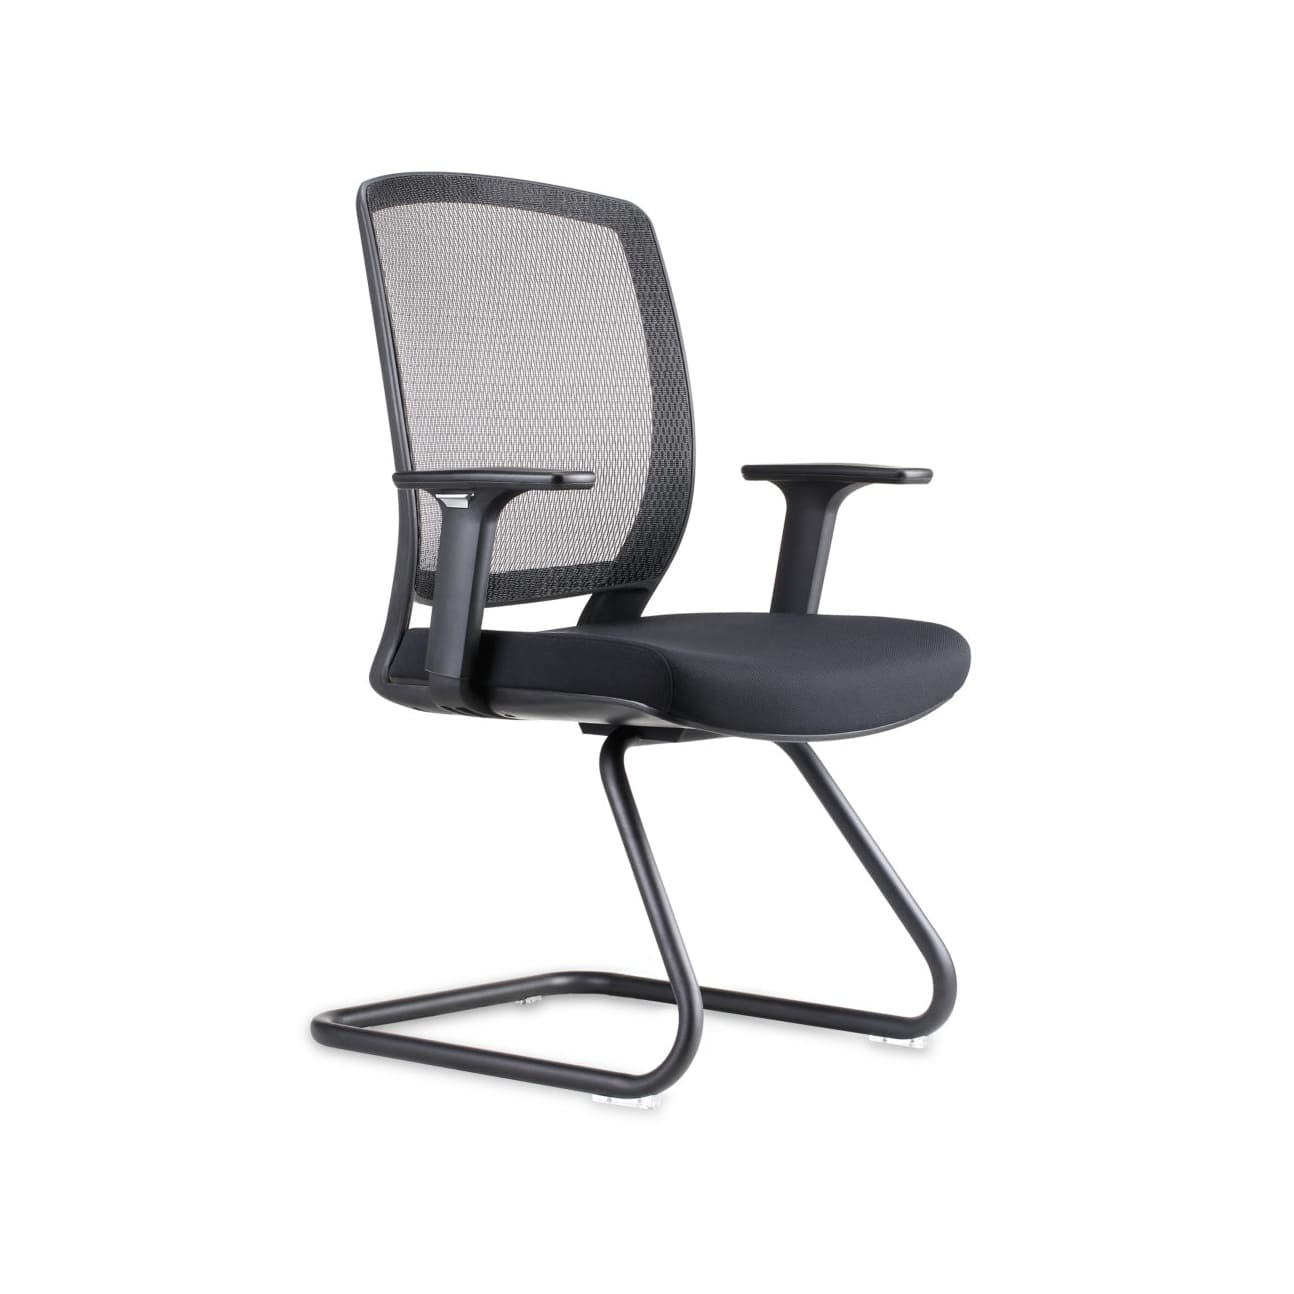 Buy Office Chairs Online Buy A Miami Visitor Chair Online Office Chairs Delivery